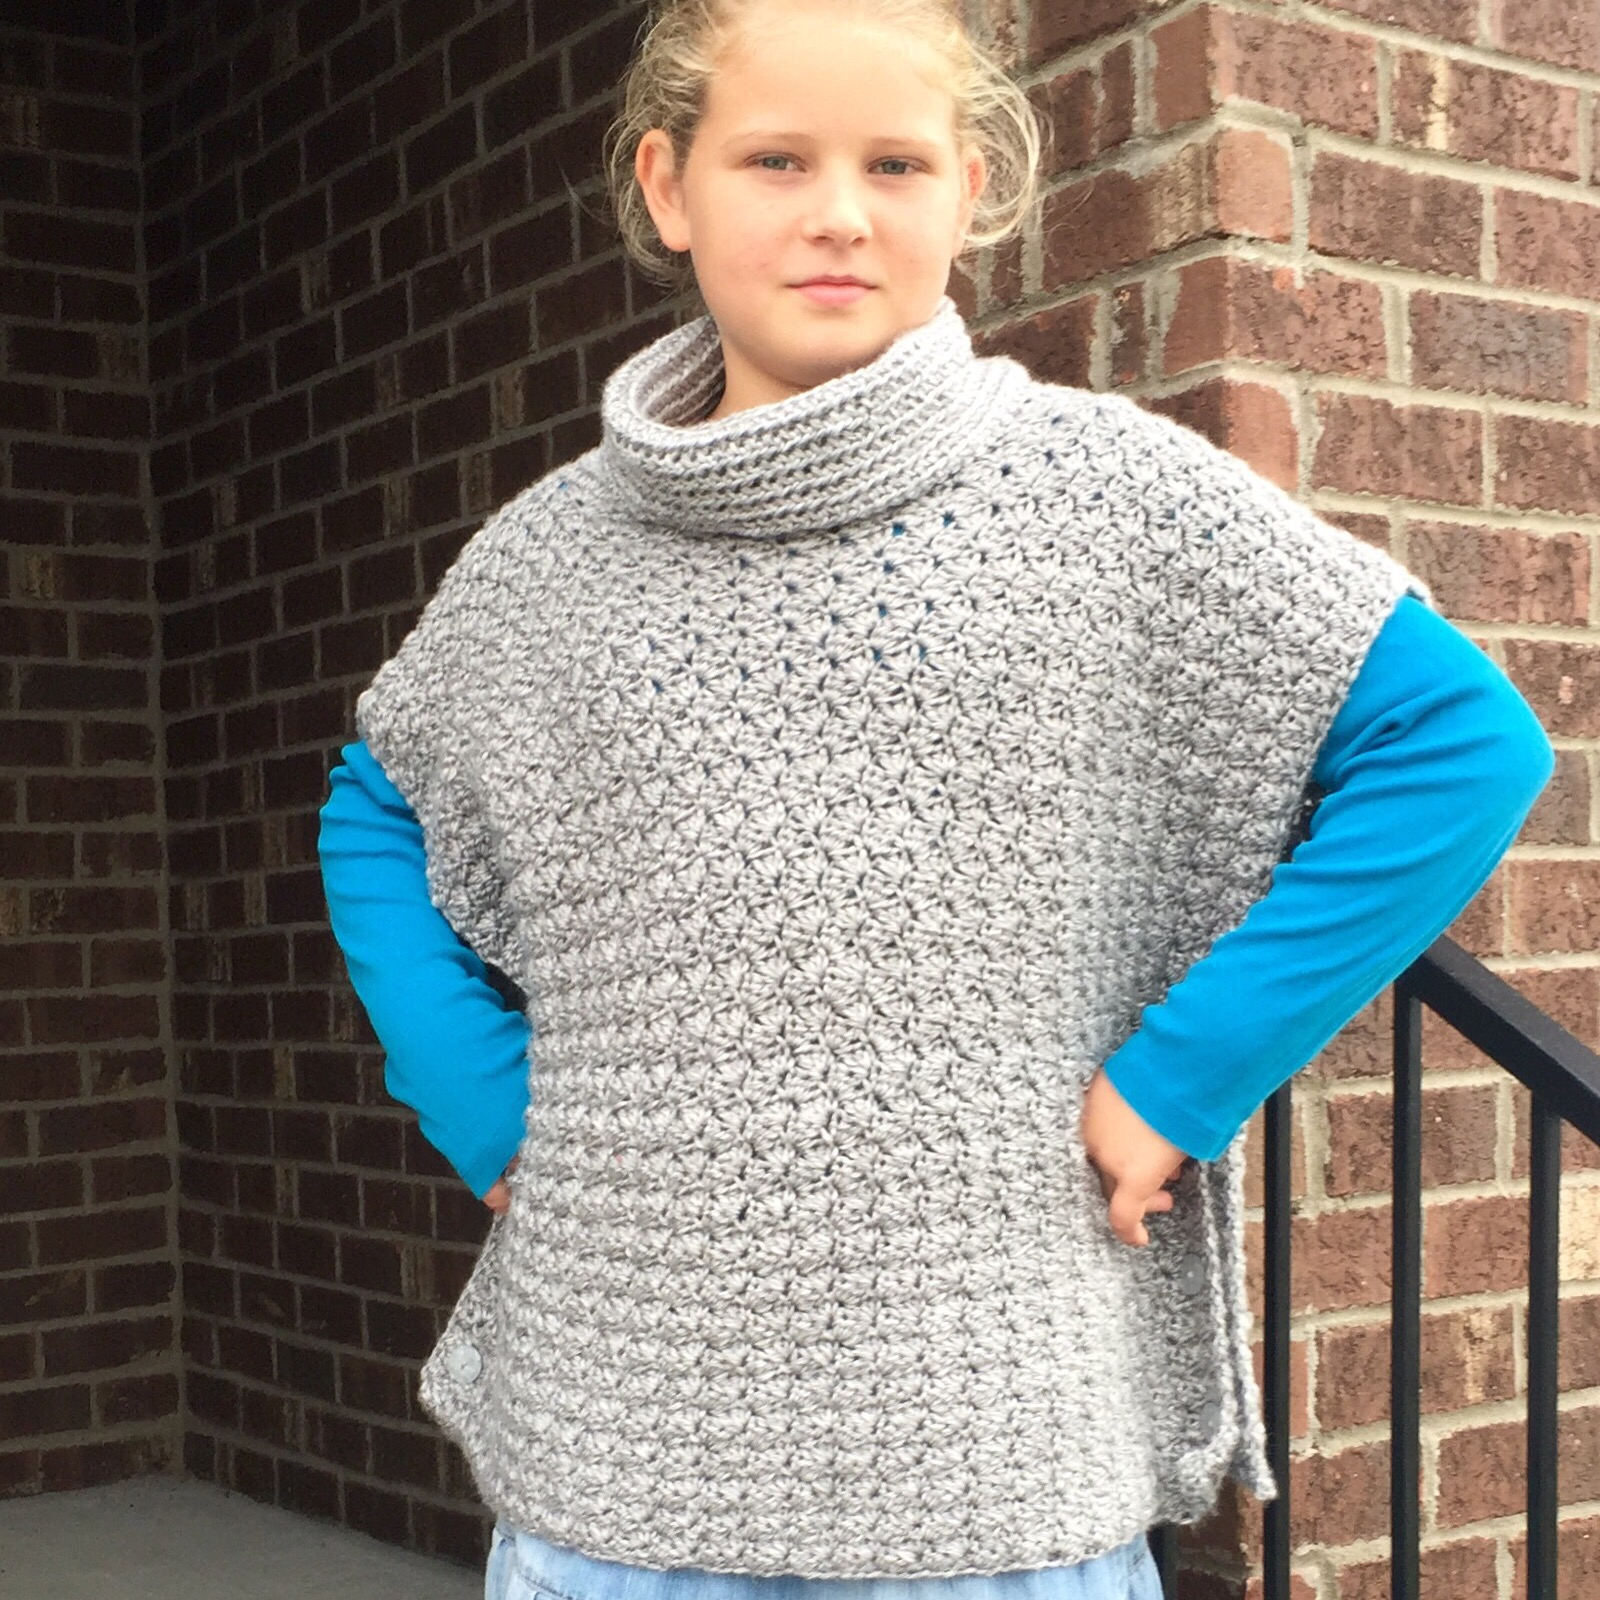 Knitting Pattern For Childs Poncho Crochet Pattern Fiona Poncho With Cowl For Babies Girls Teen Women